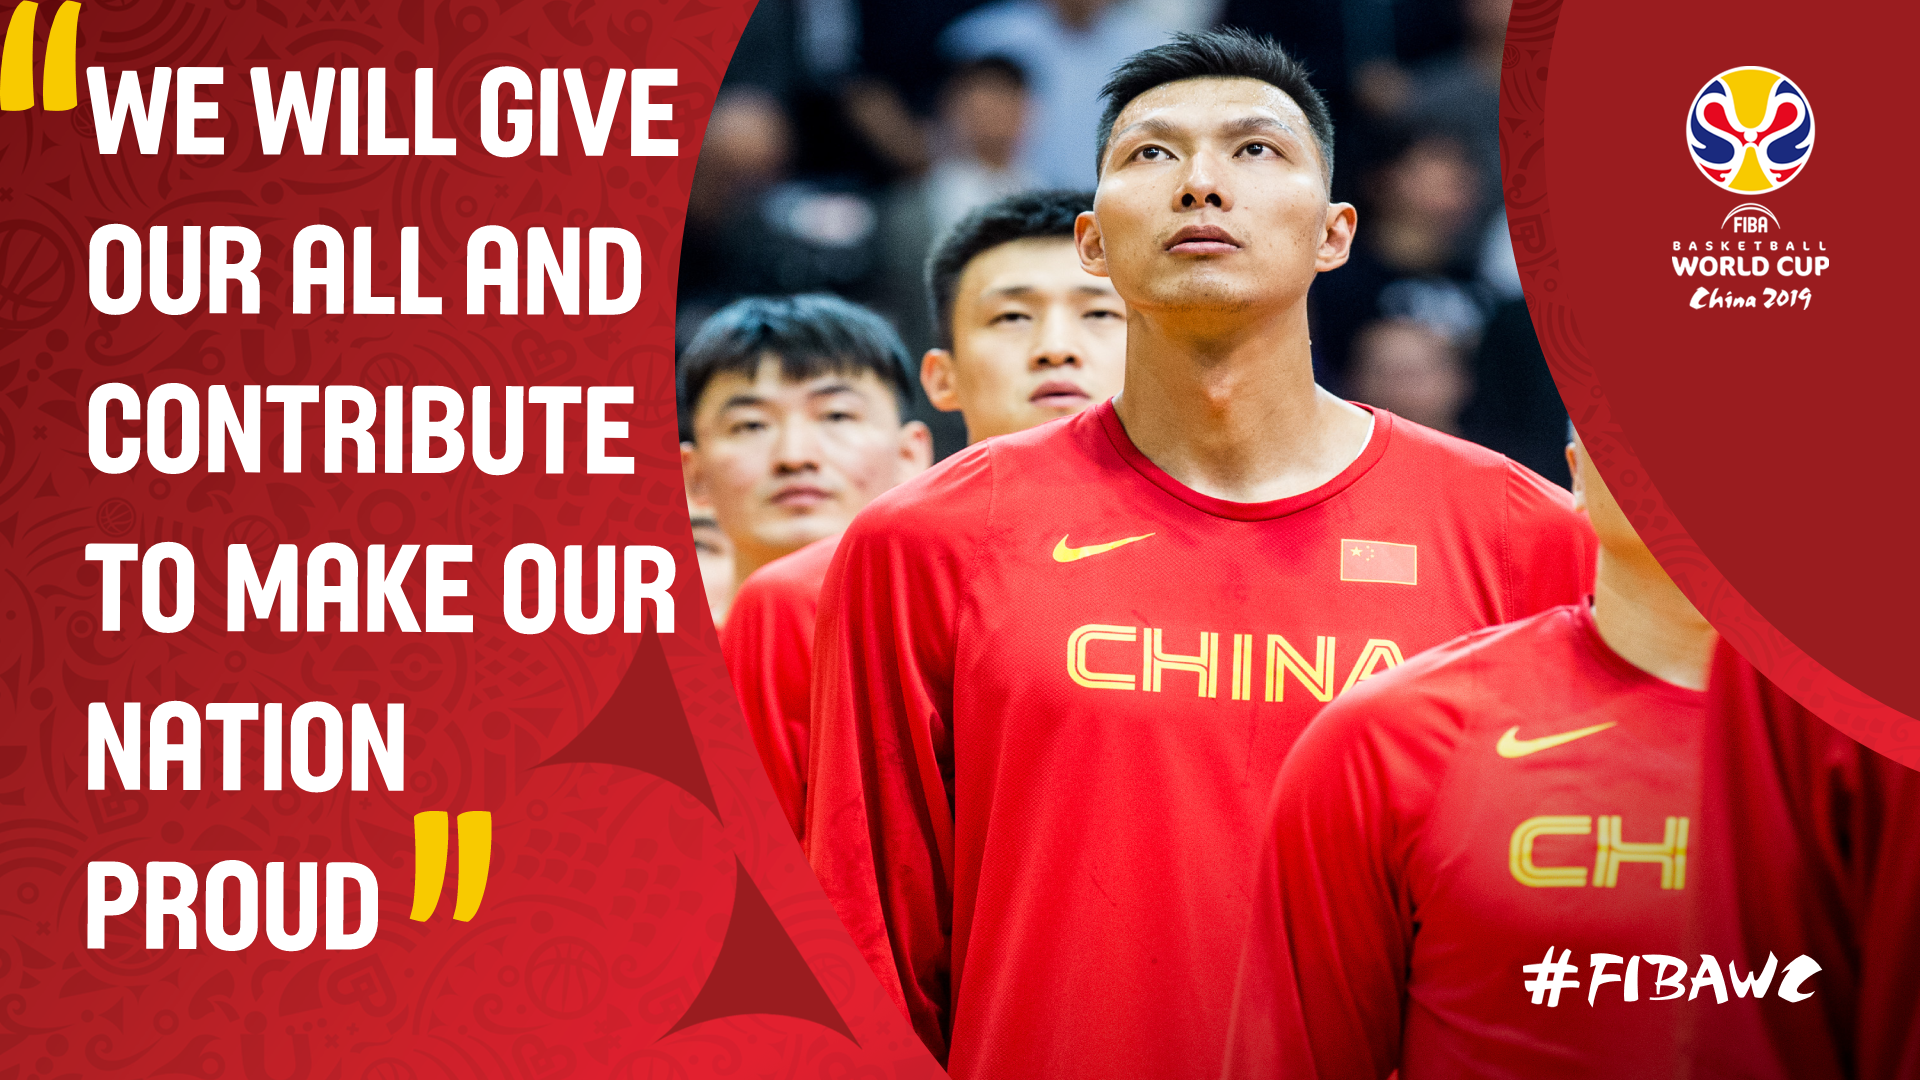 FIBAWC Preview: Chinese Homeland heroes reaching beyond borders